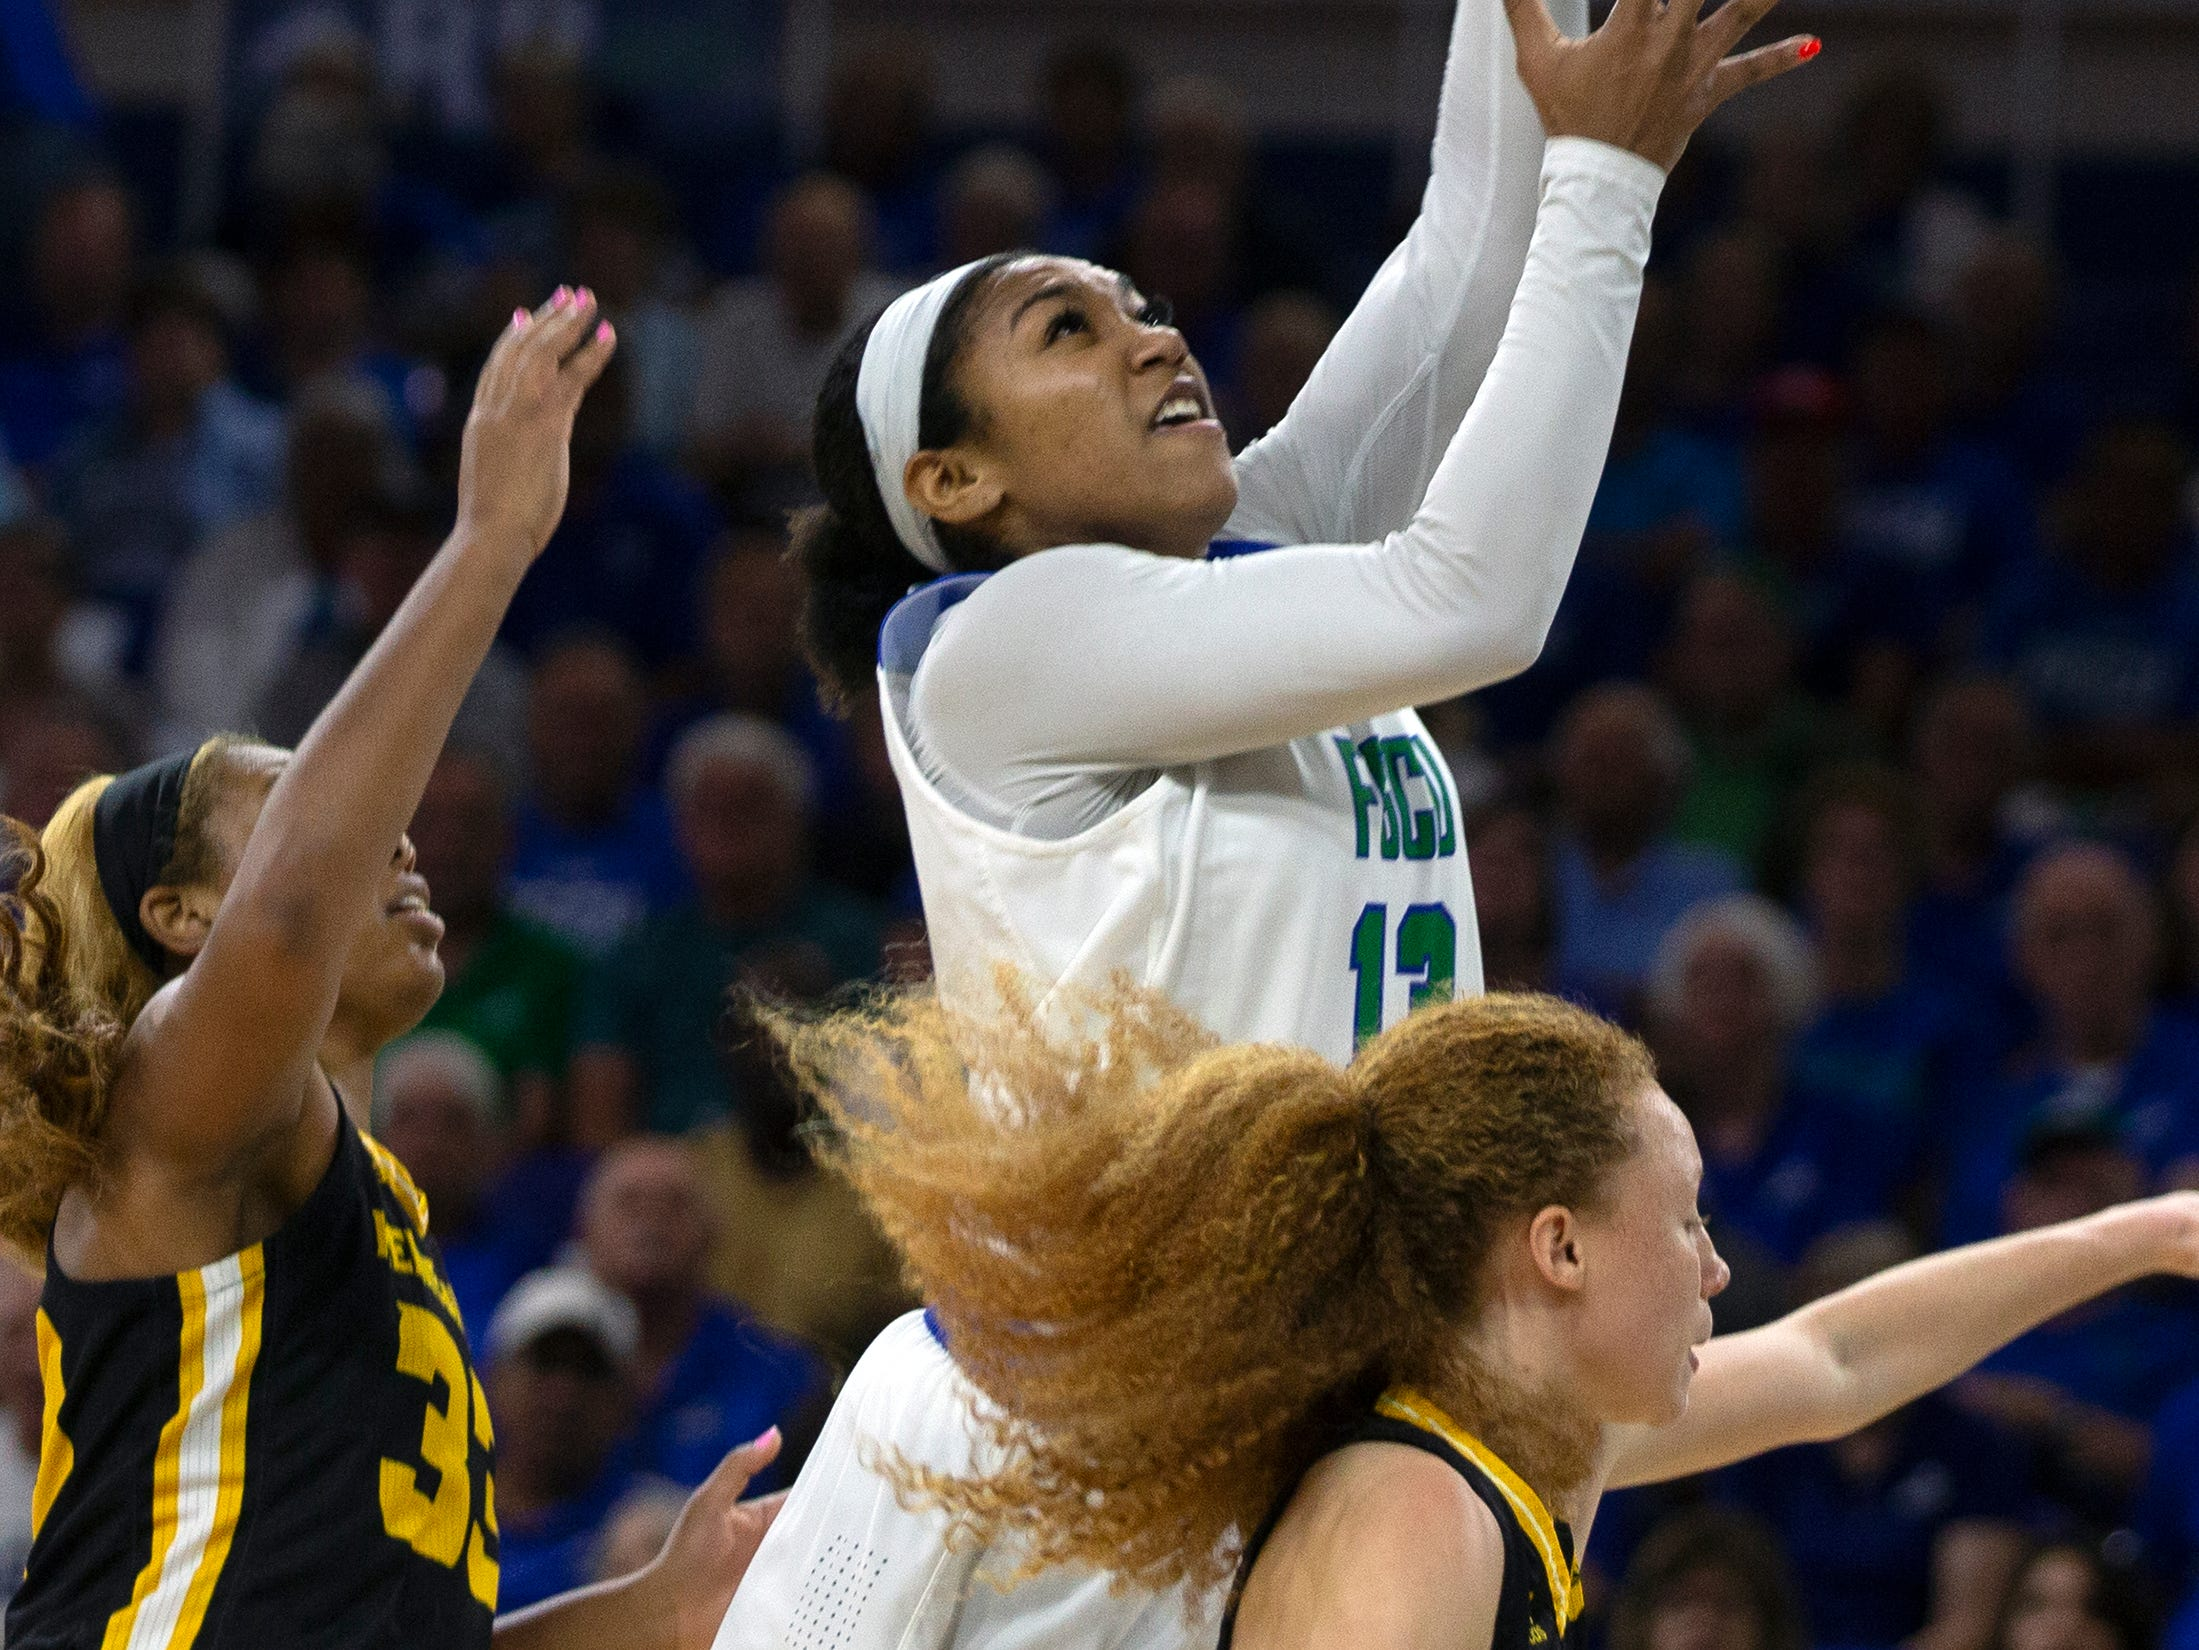 Florida Gulf Coast University's Kerstie Phills goes up for a layup against Kennesaw State, Wednesday, March 13, 2019, at Florida Gulf Coast University's Alico Arena.